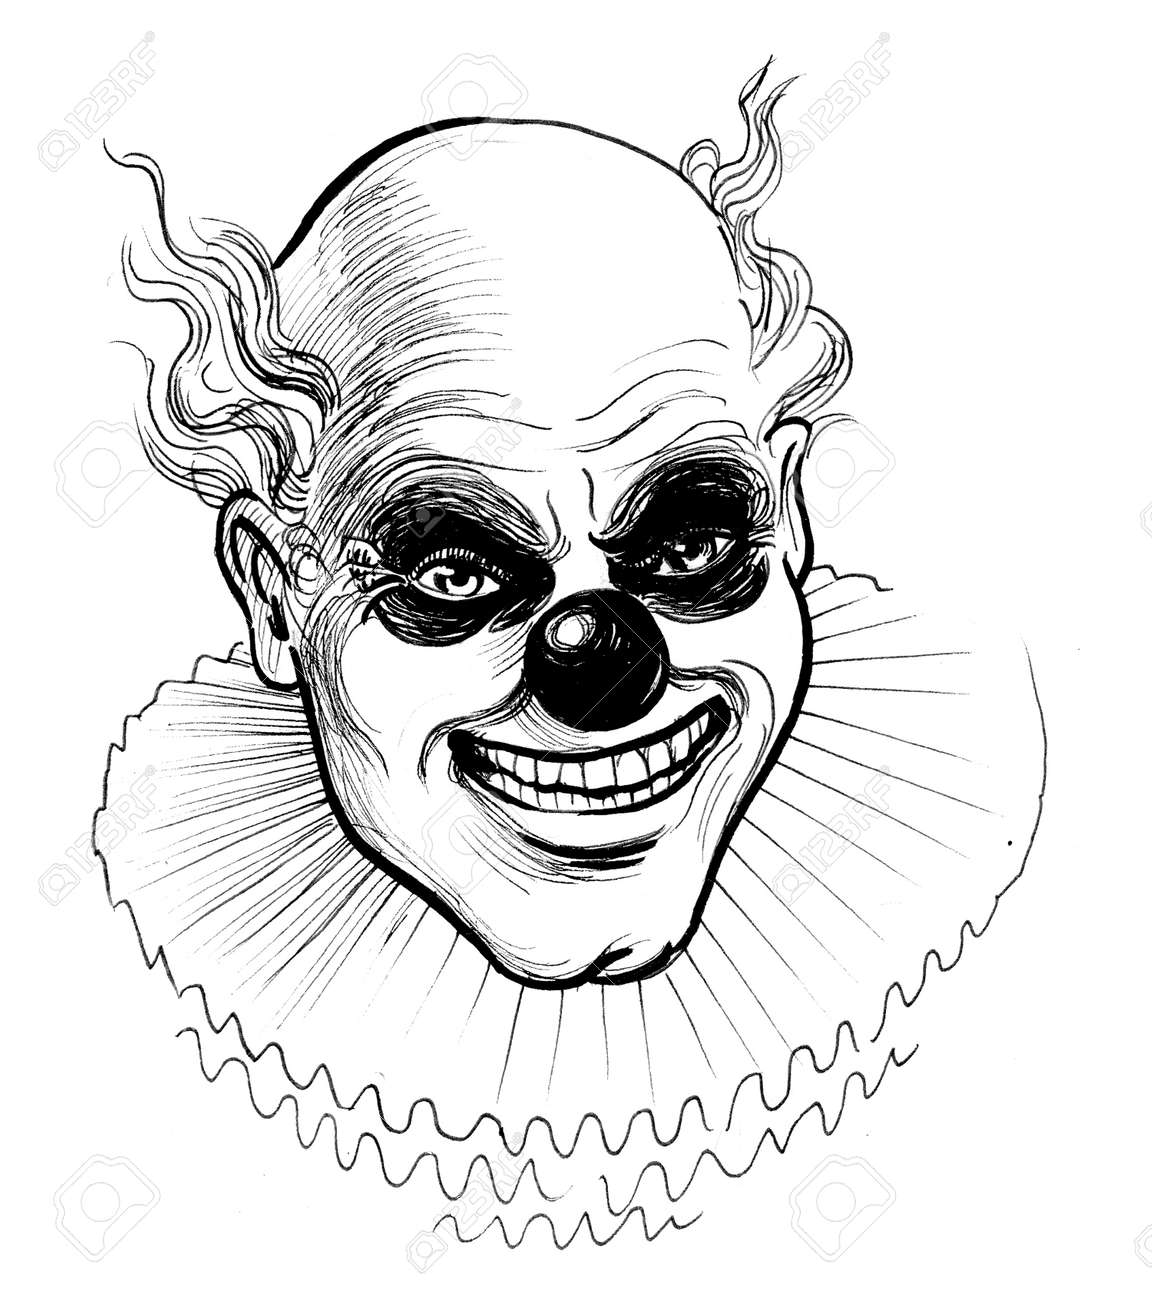 Scary Clown Ink Black And White Drawing Stock Photo Picture And Royalty Free Image Image 134215644